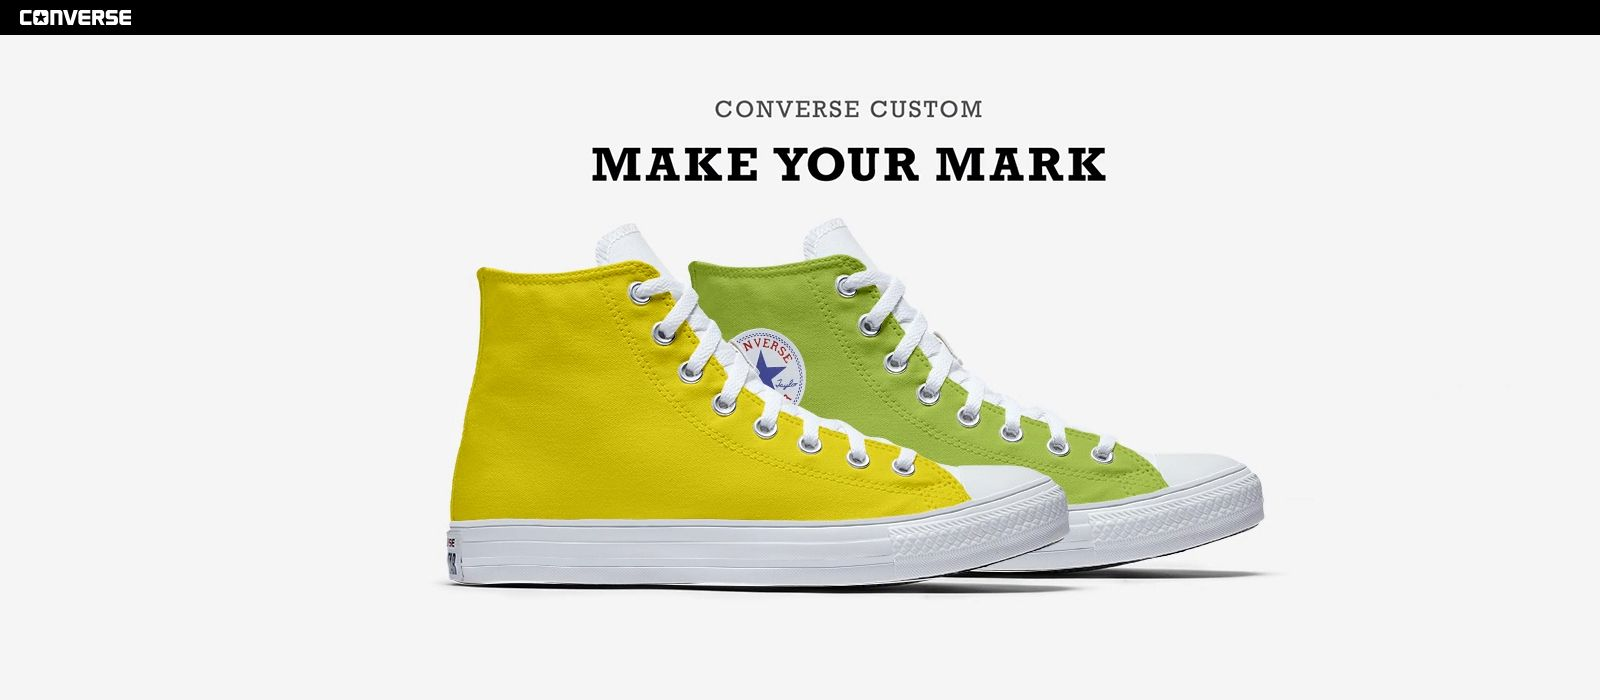 d7200f9e2cea CUSTOMIZE YOUR ALL STAR CONVERSE - The Rebel Dandy